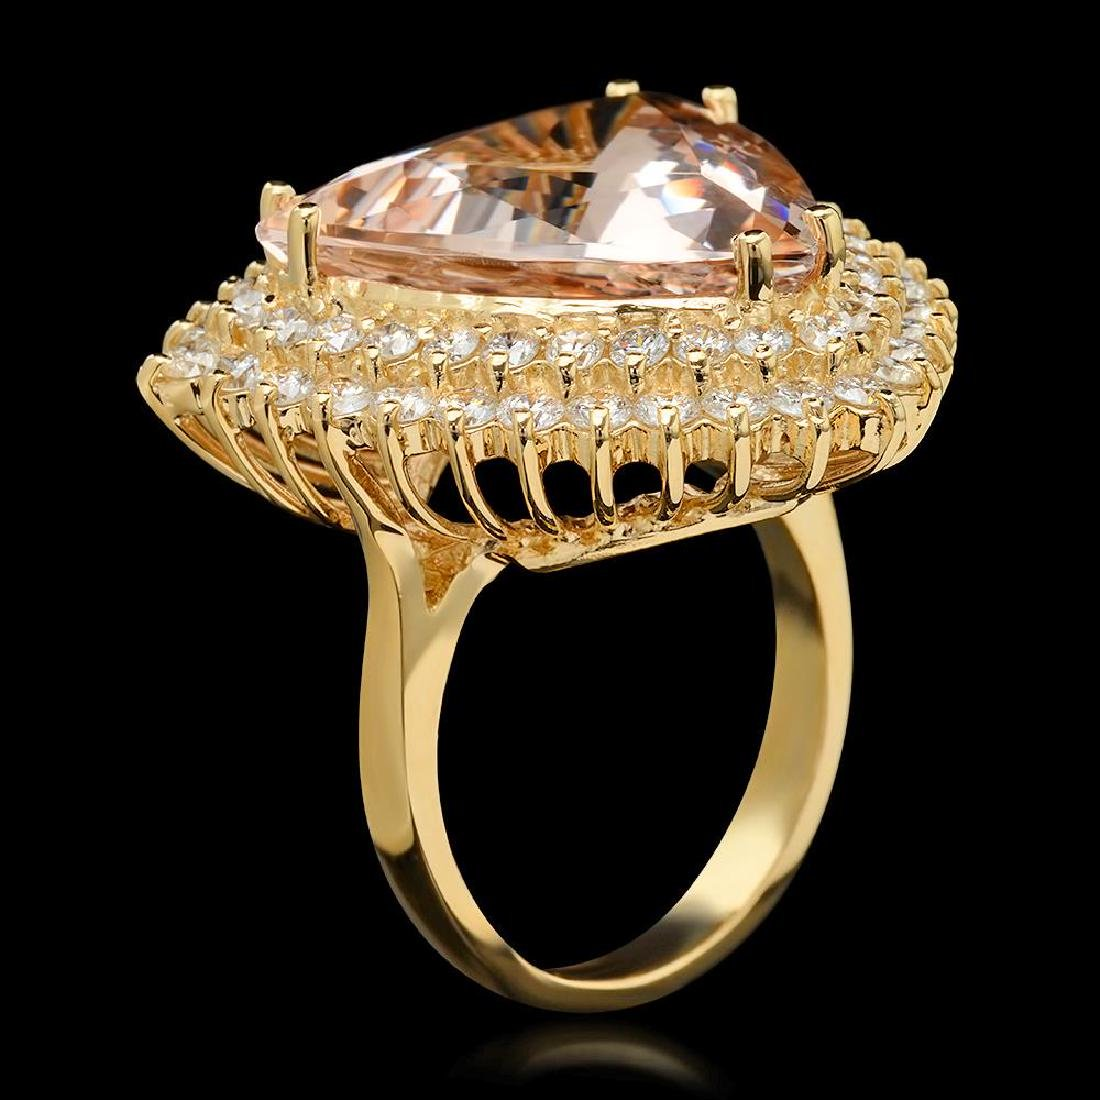 14K Gold 13.58ct Morganite 2.21ct Diamond Ring - 2